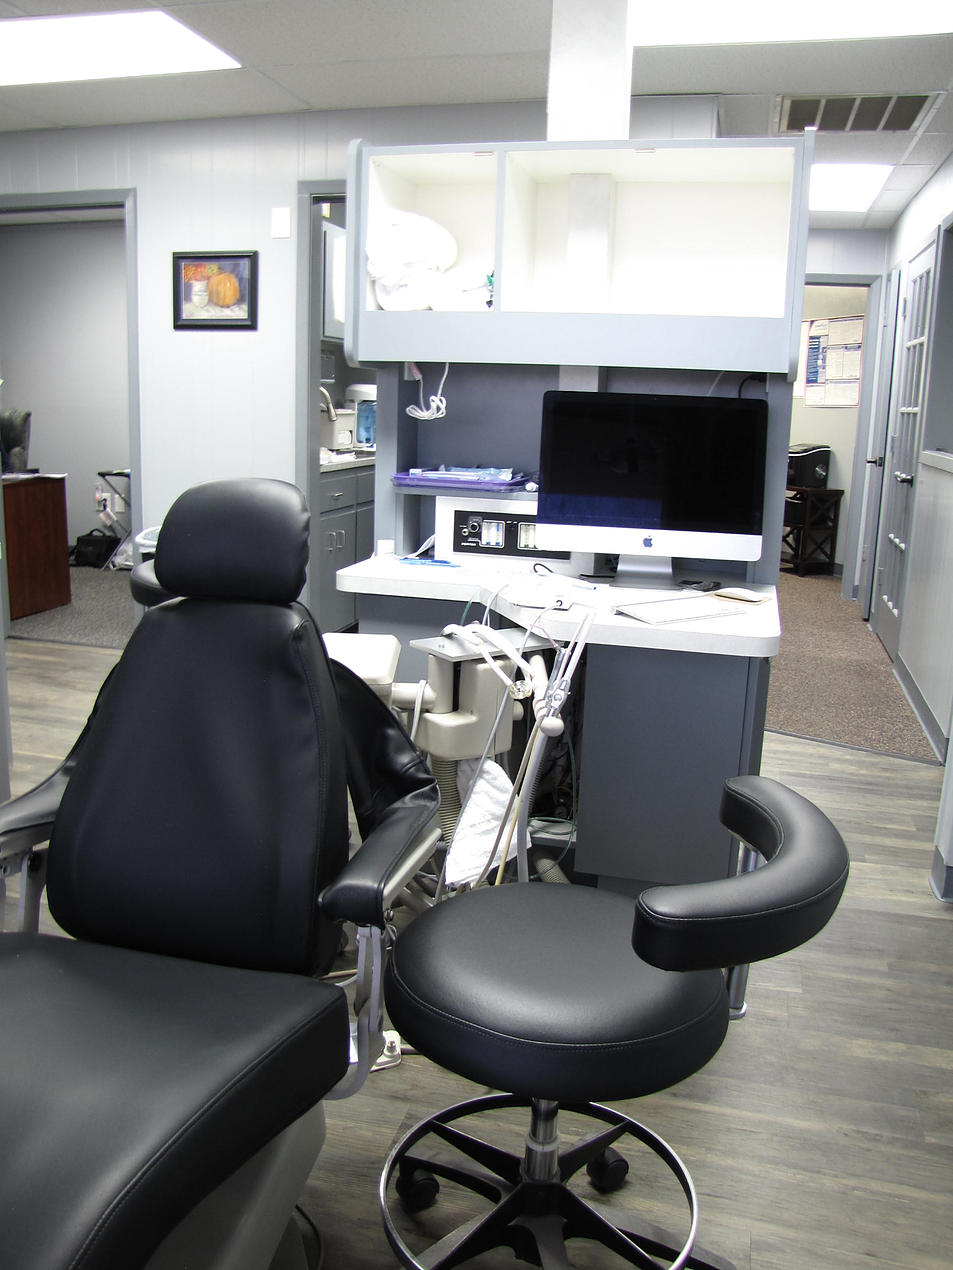 Reddell Russell W DDS - dentist  | Photo 6 of 7 | Address: 2420 Quaker Ave #101, Lubbock, TX 79410, USA | Phone: (806) 701-5066